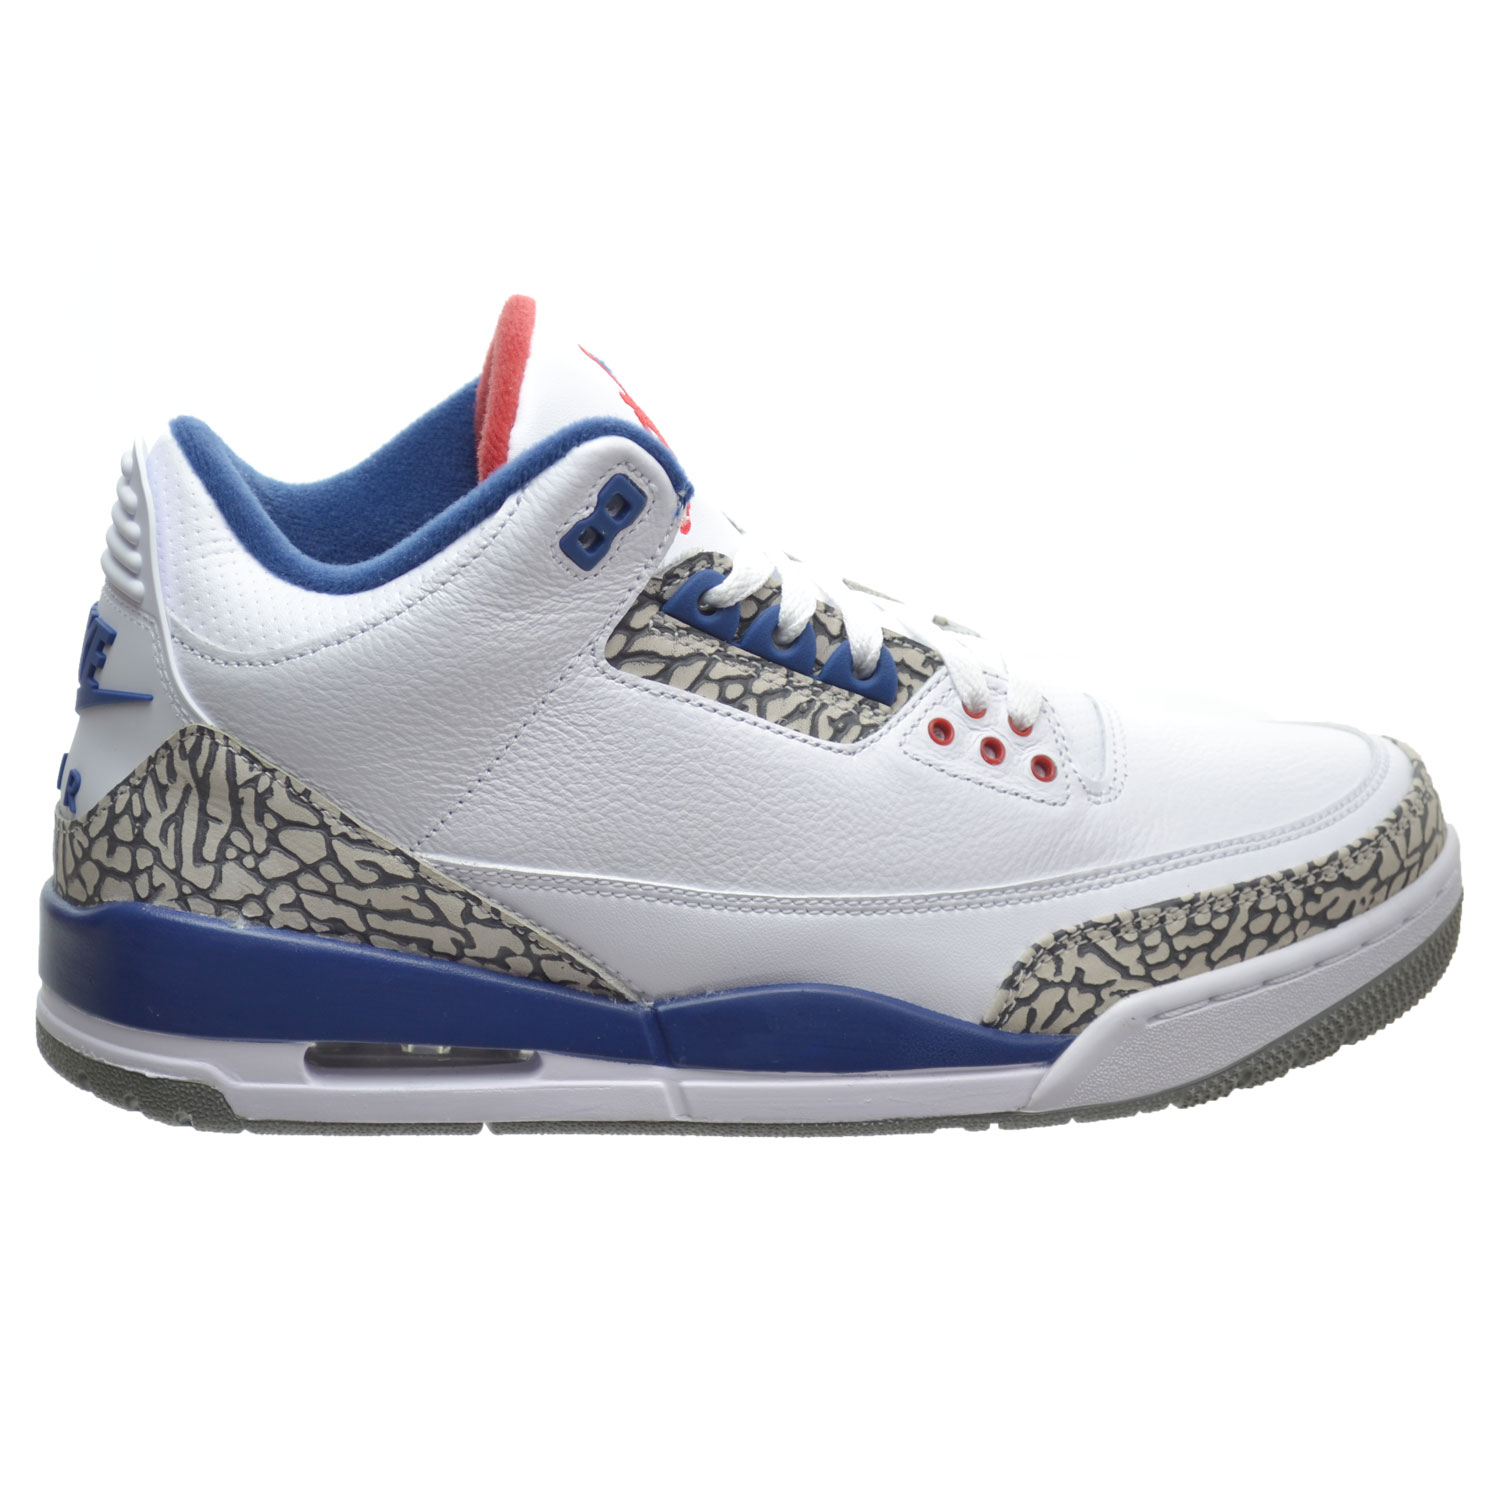 dd68837bd63d Details about Air Jordan 3 Retro OG Men s Basketball Shoes White Fire Red True  Blue 854262-106